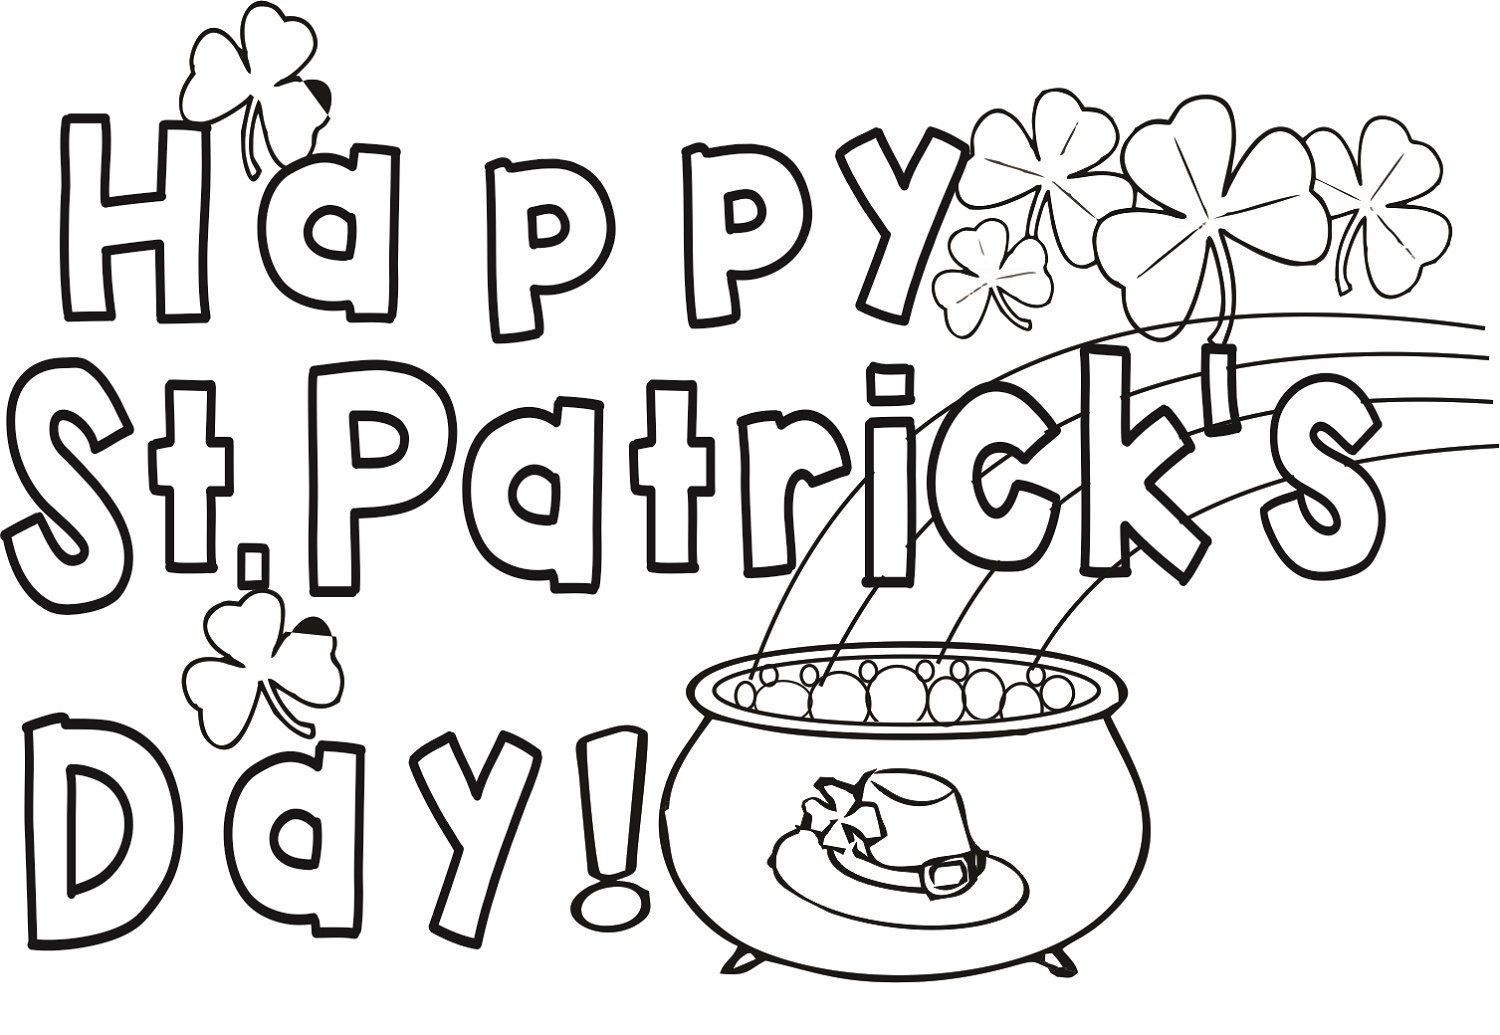 Happy St Patrick's Day Coloring Pages